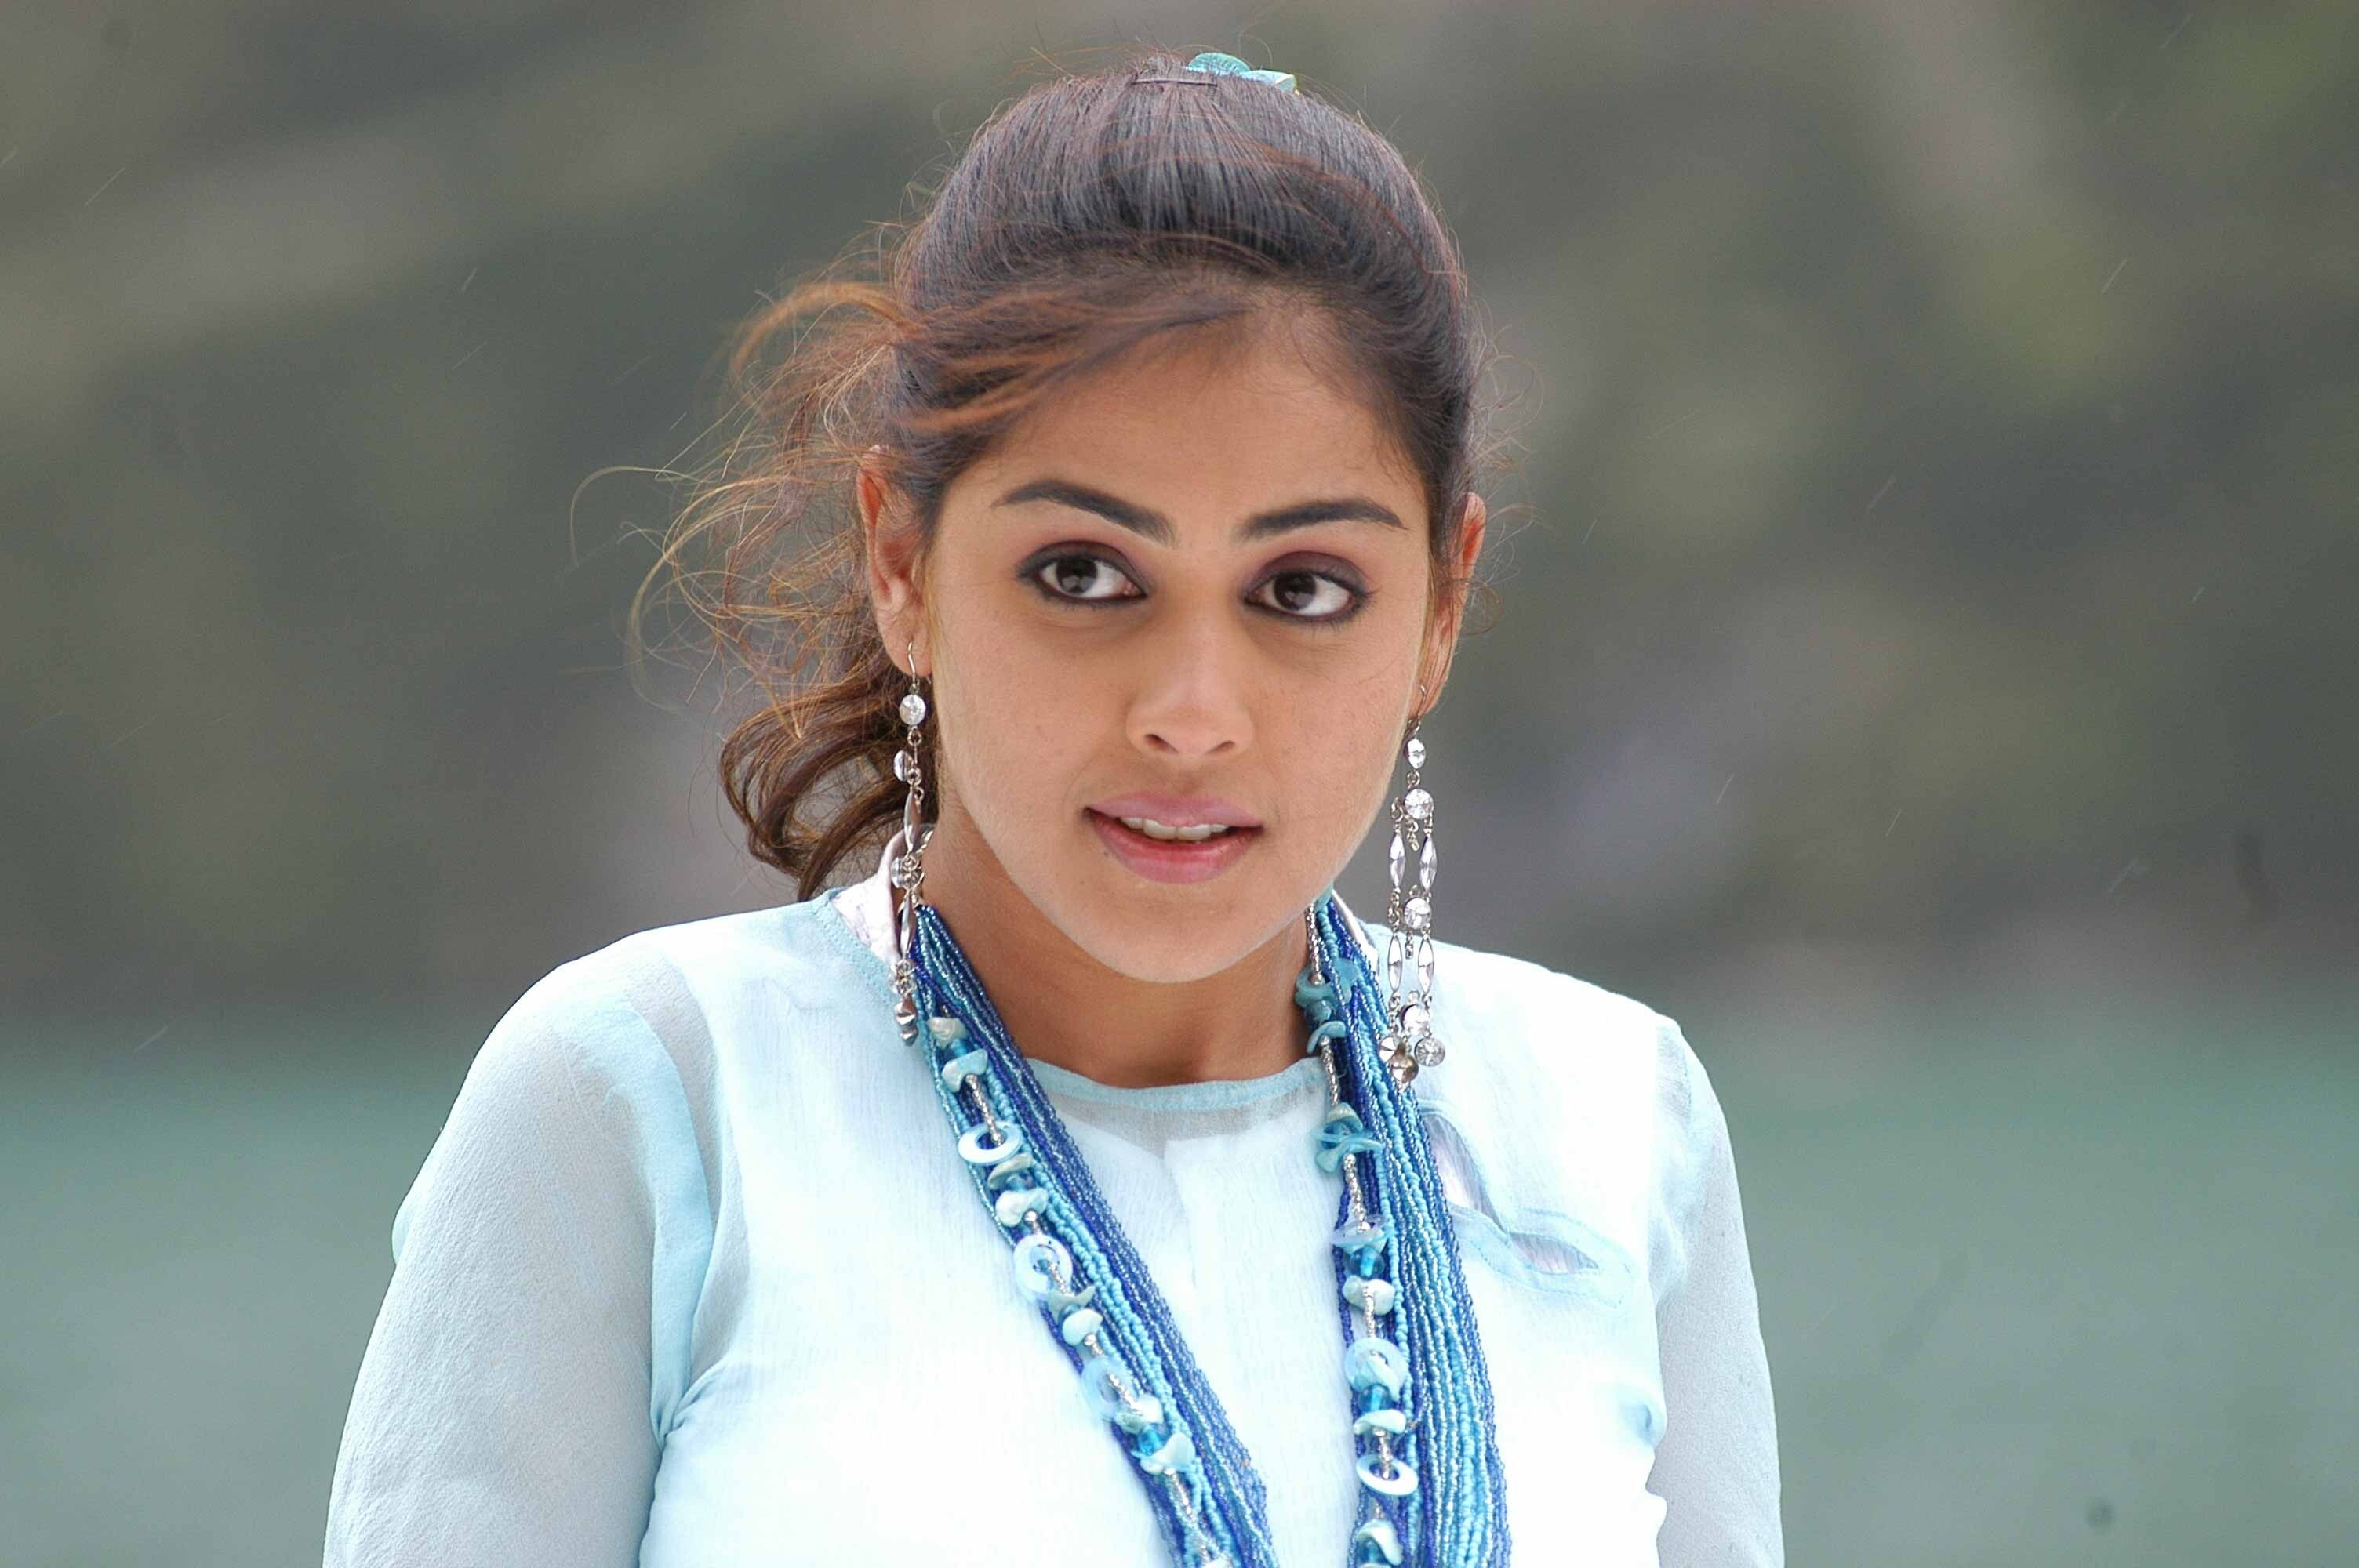 Download Genelia HD wallpaper in Laptop and desktop